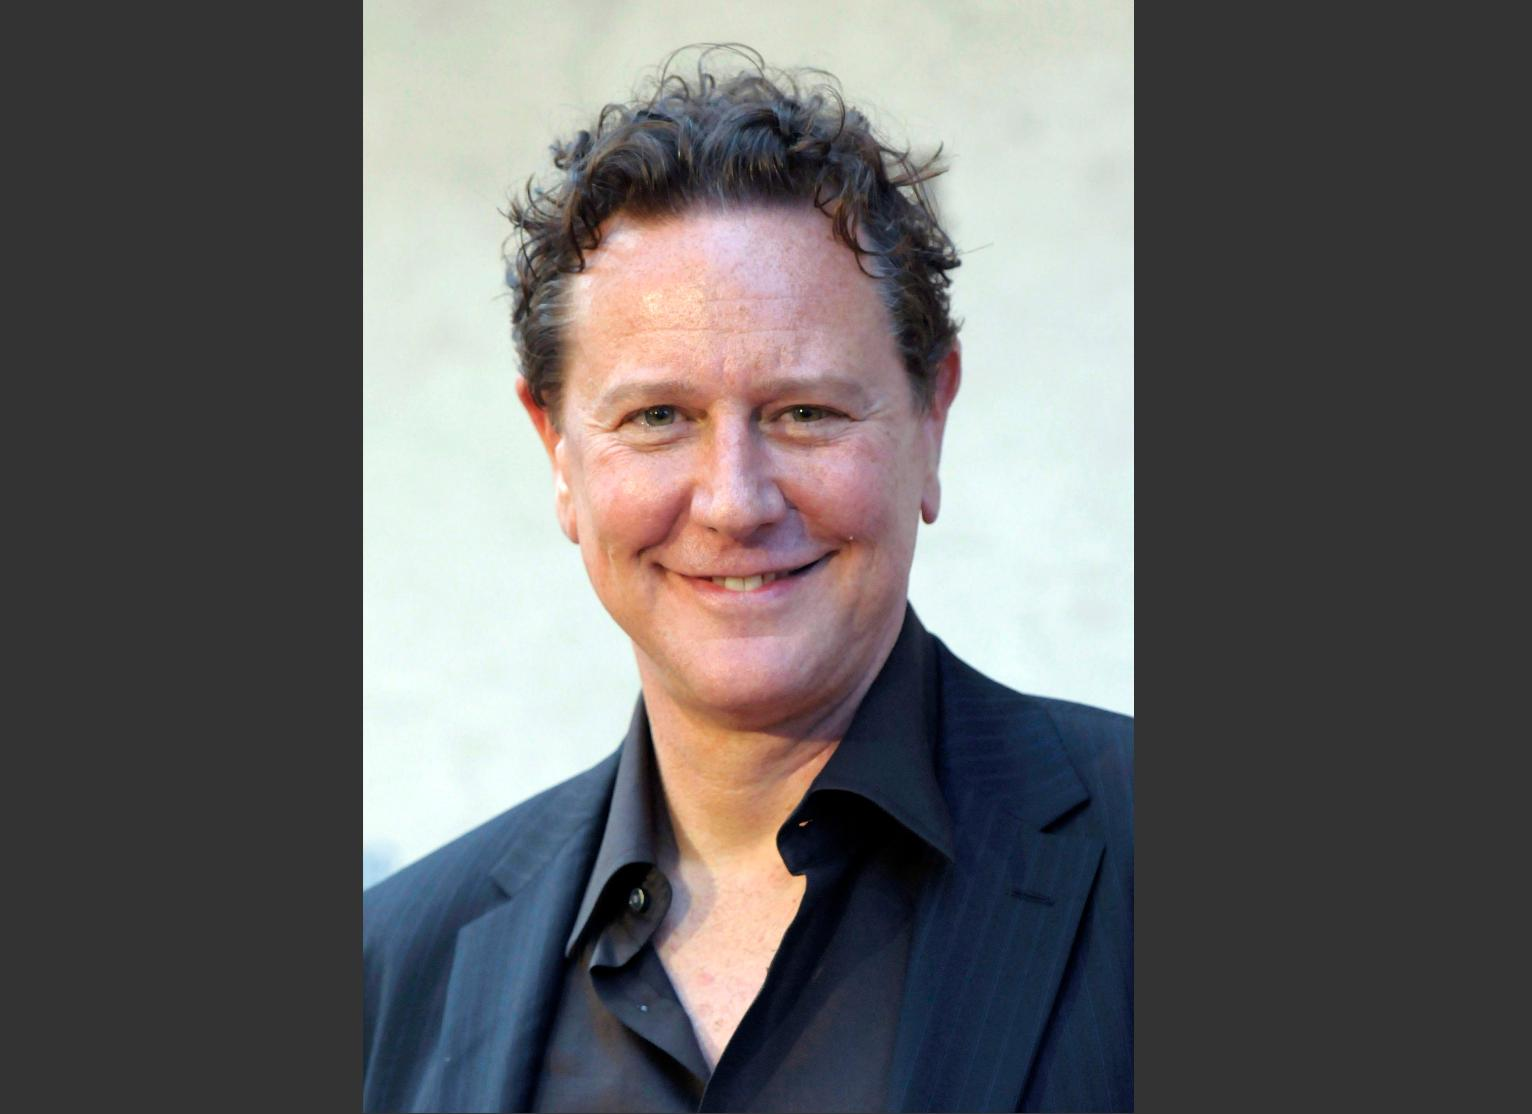 Used Cars In House Financing >> Judge Reinhold arrested at Dallas airport checkpoint | Entertainment News | US News